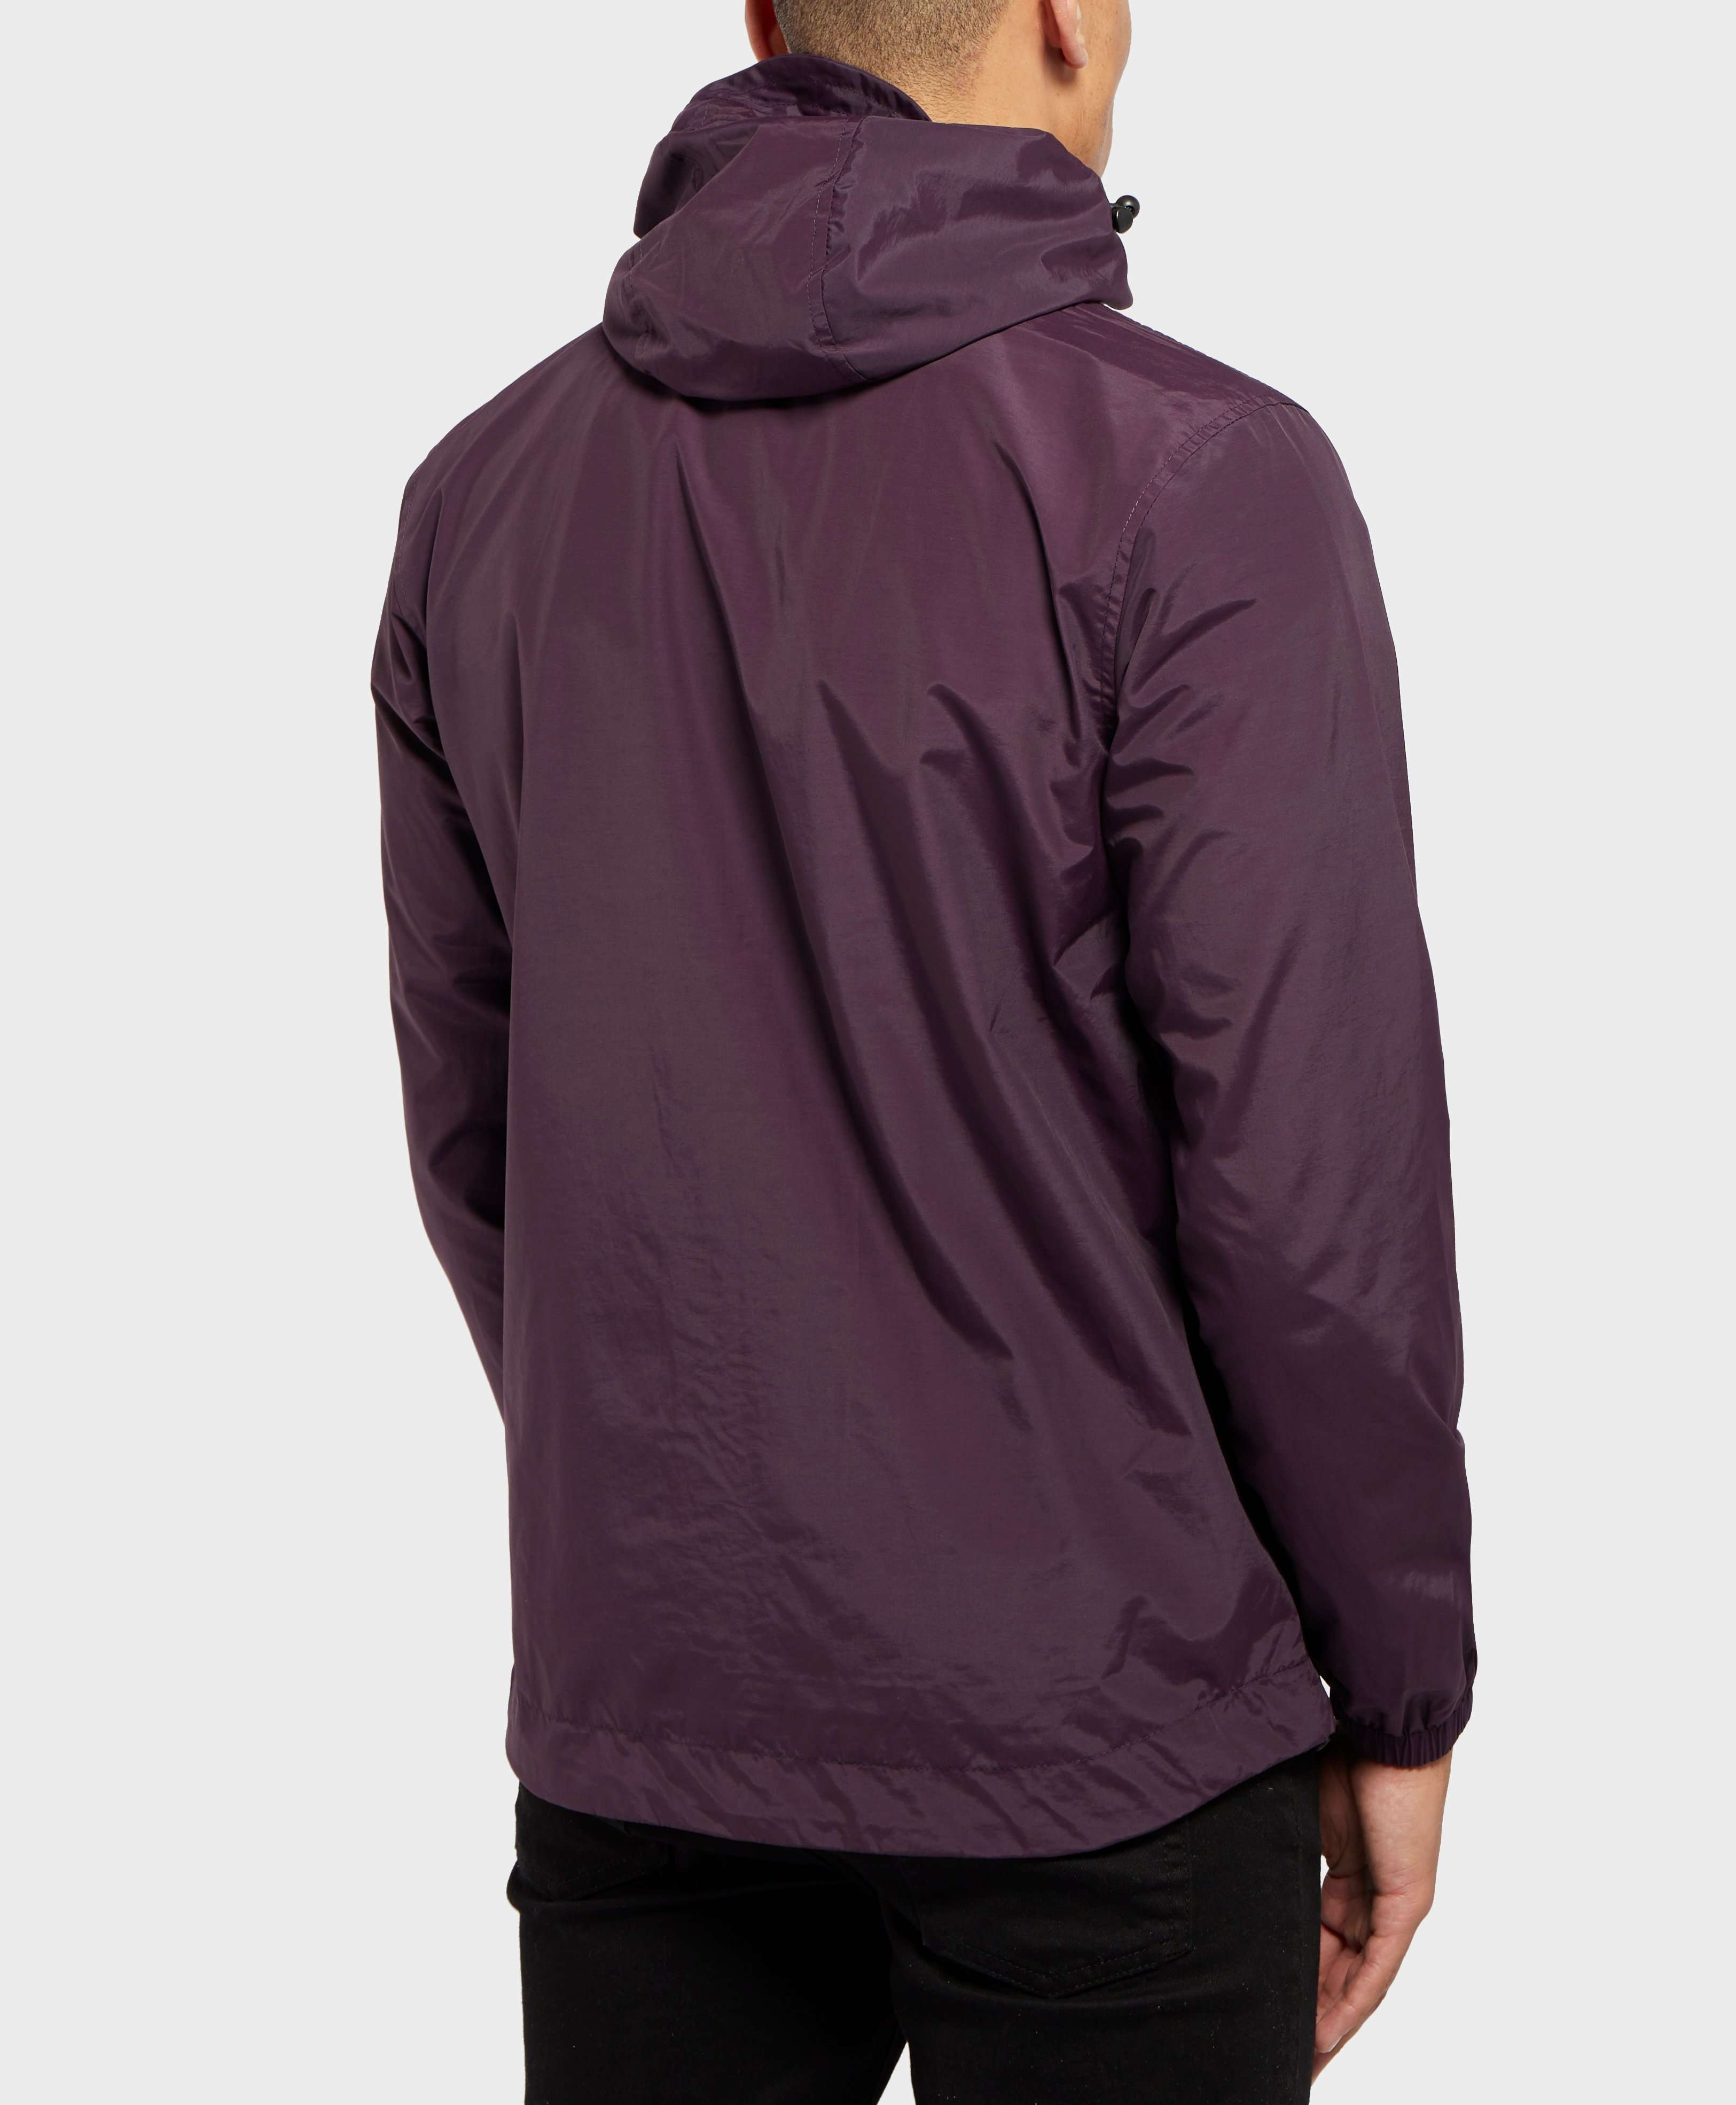 Lyle & Scott Lightweight Festival Jacket